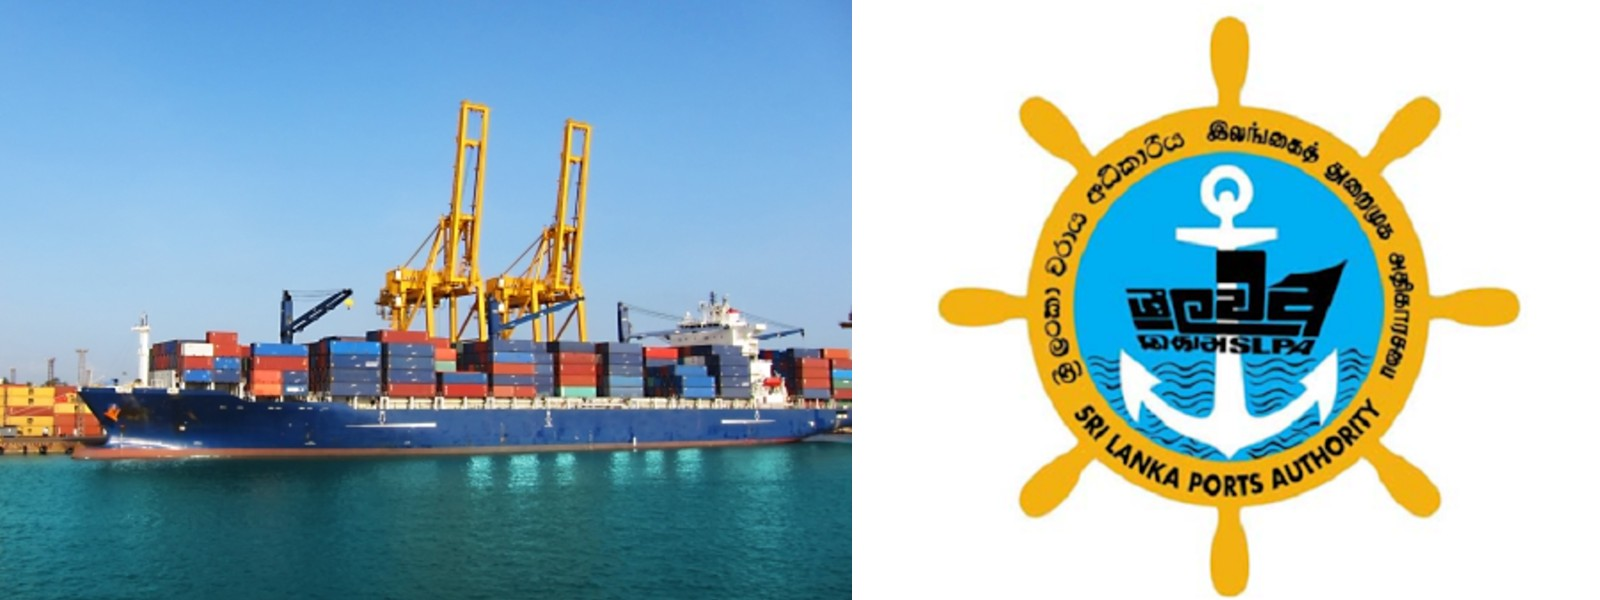 Sri Lanka Ports Authority declared as an essential public service